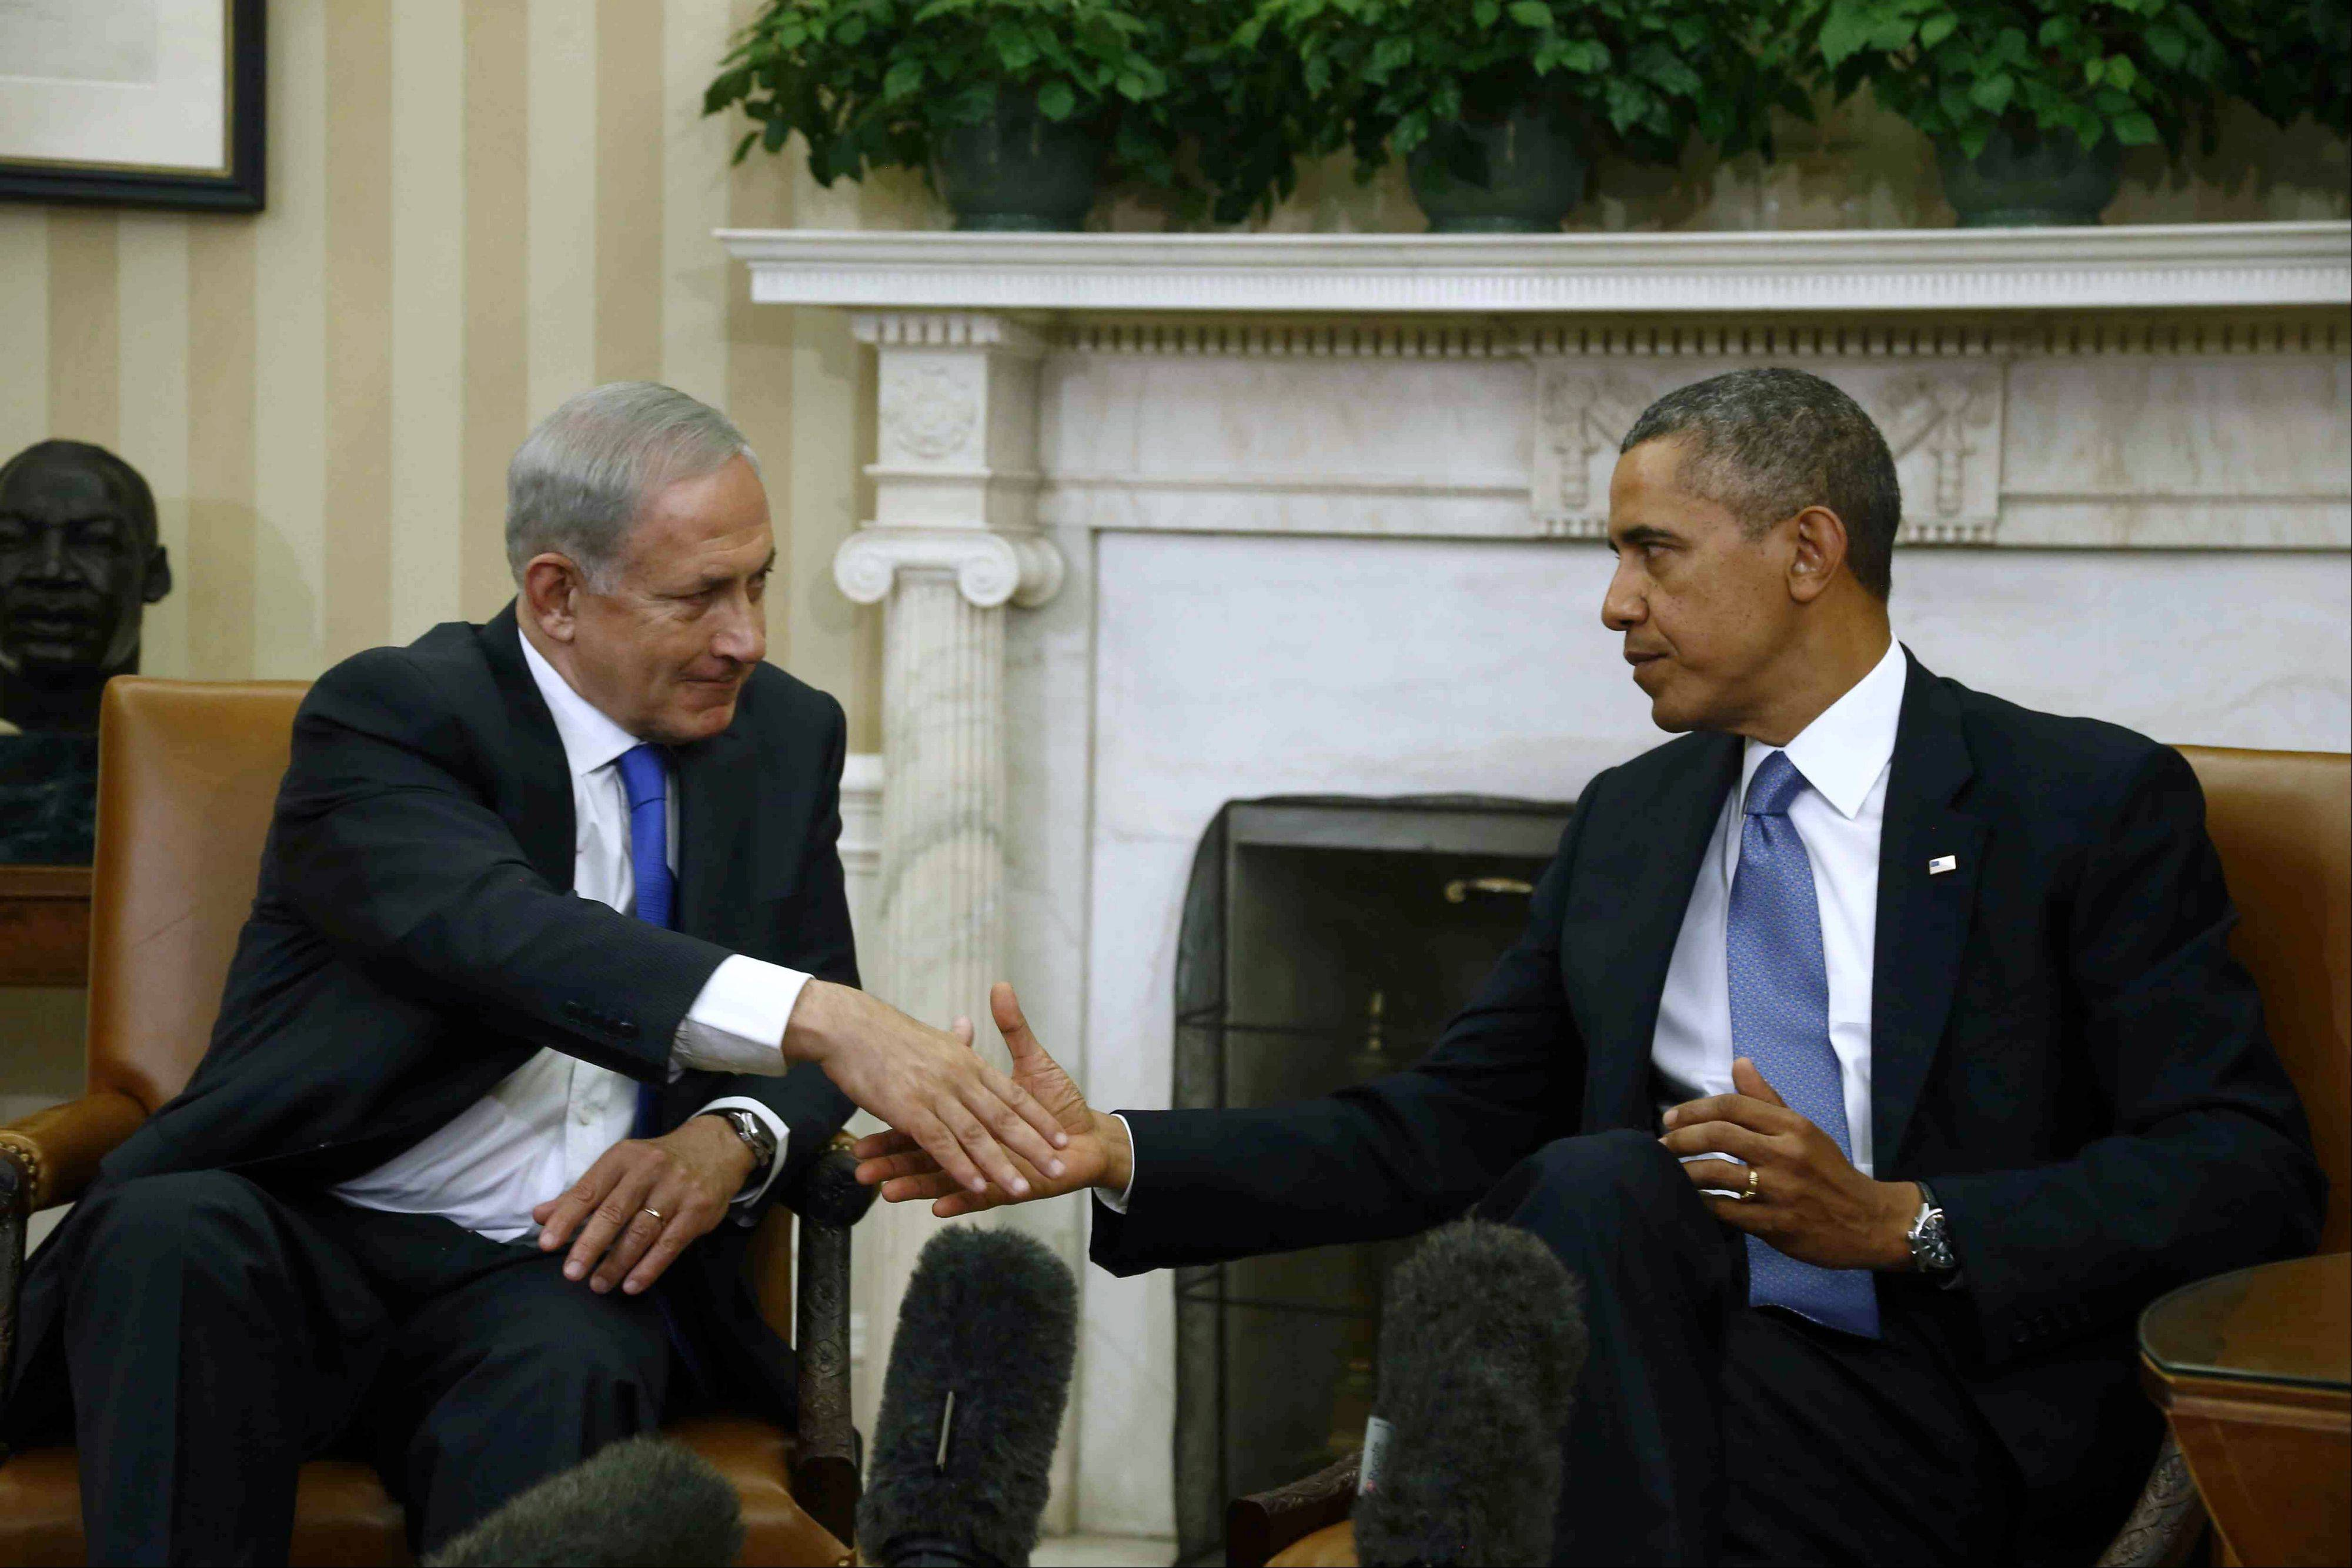 President Barack Obama shakes hands with Israeli Prime Minister Benjamin Netanyahu during their meeting in the Oval Office of the White House in Washington, Monday.